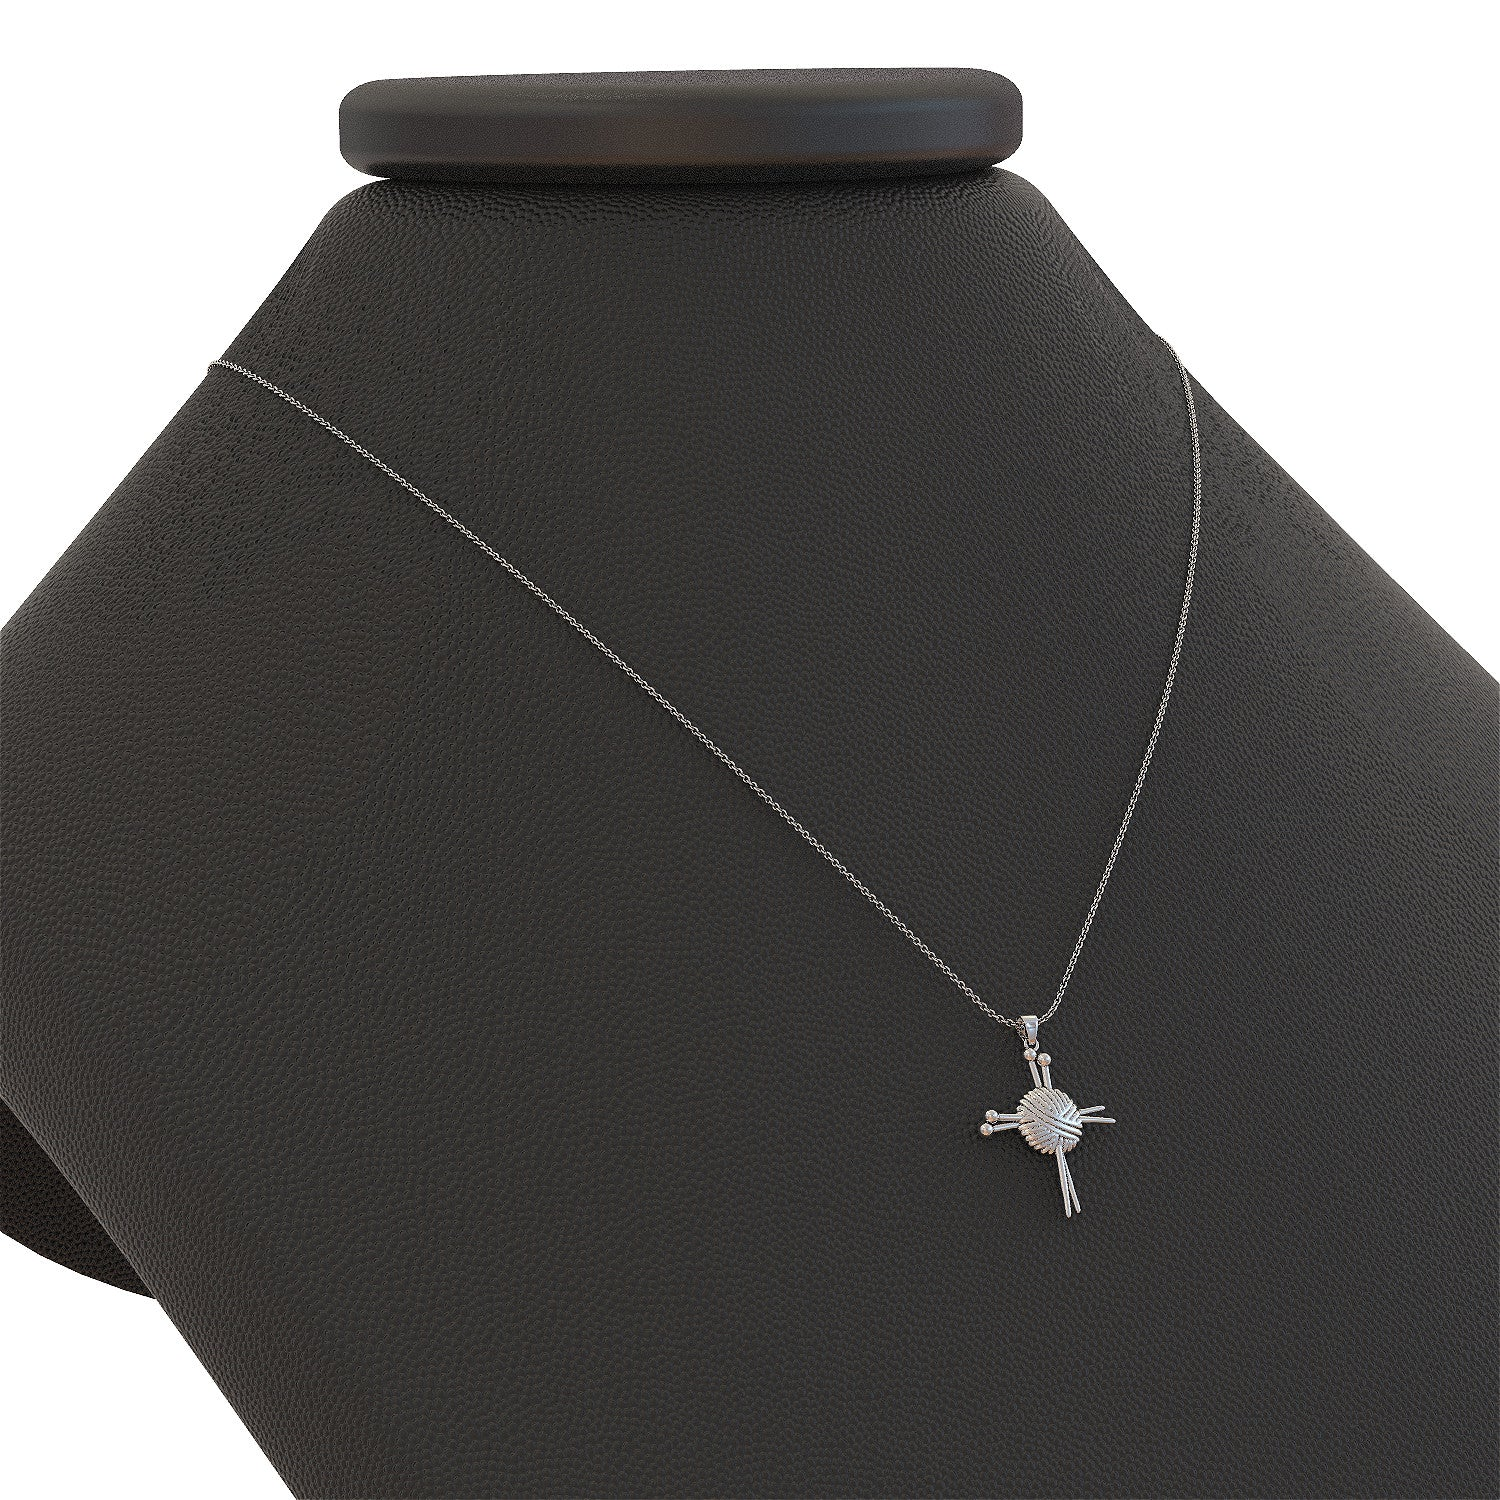 Knitting Cross Necklace - STRICTLY LIMITED EDITION